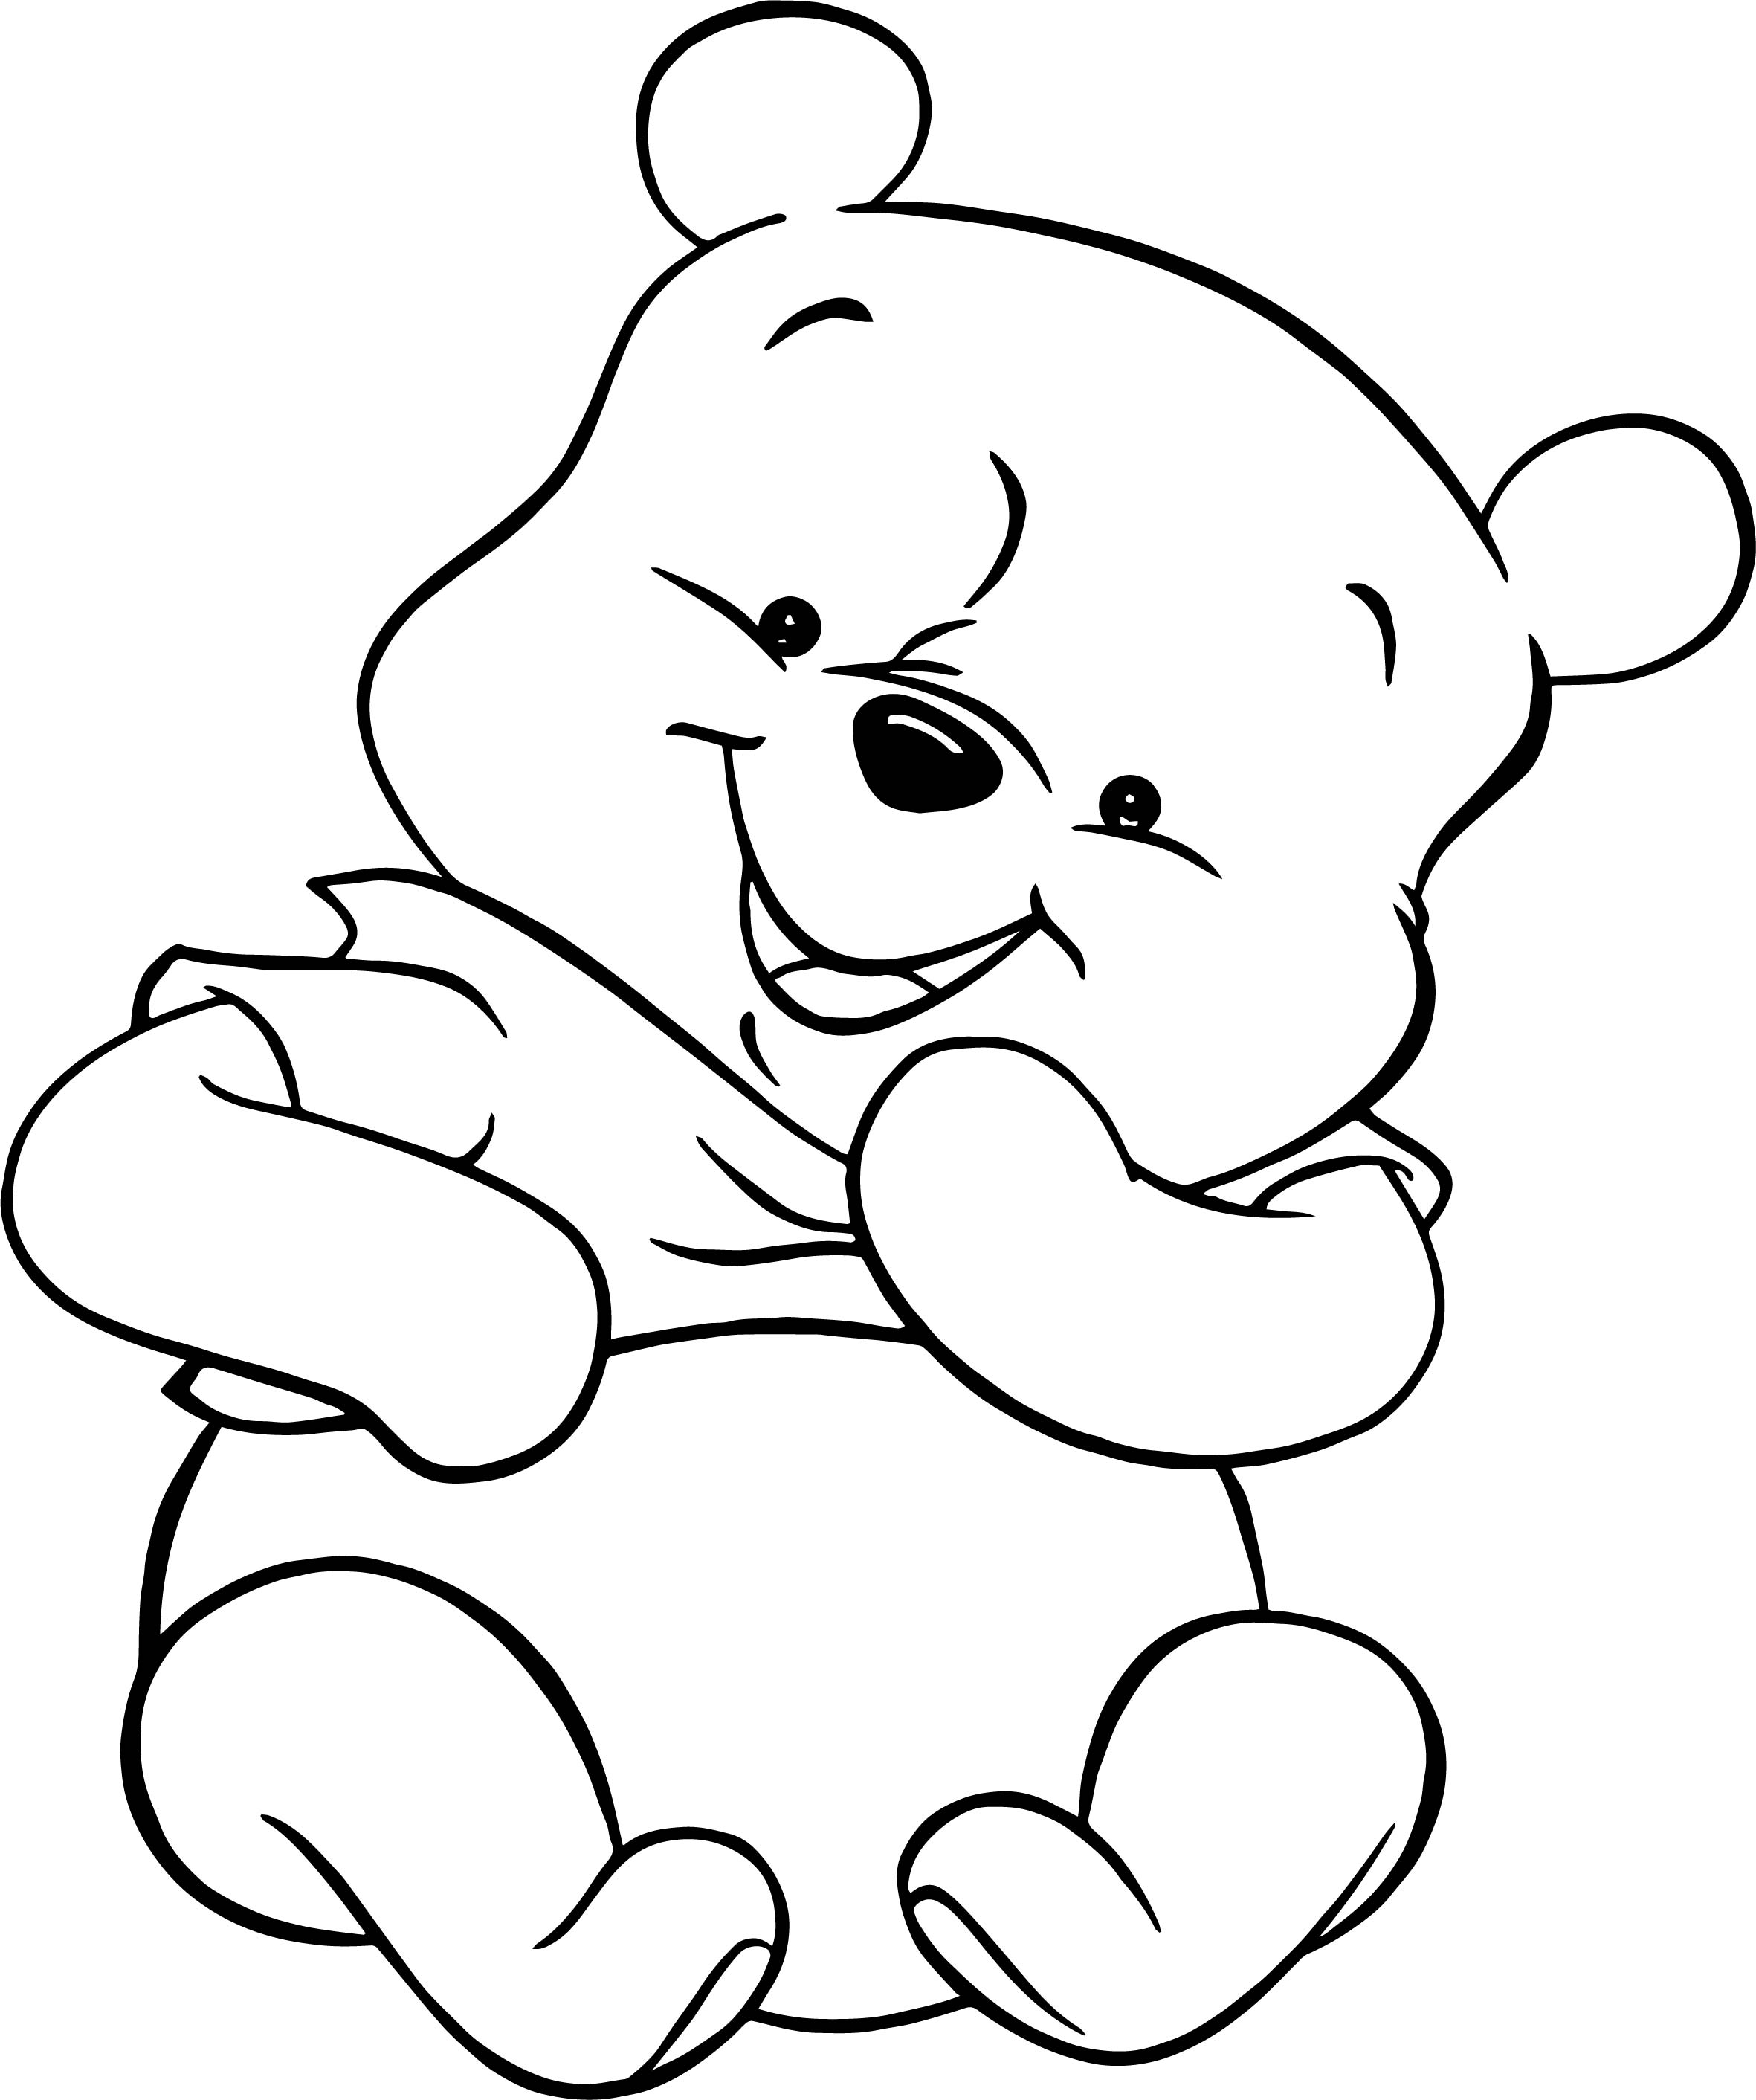 Baby Pooh Toy Gift Coloring Pages